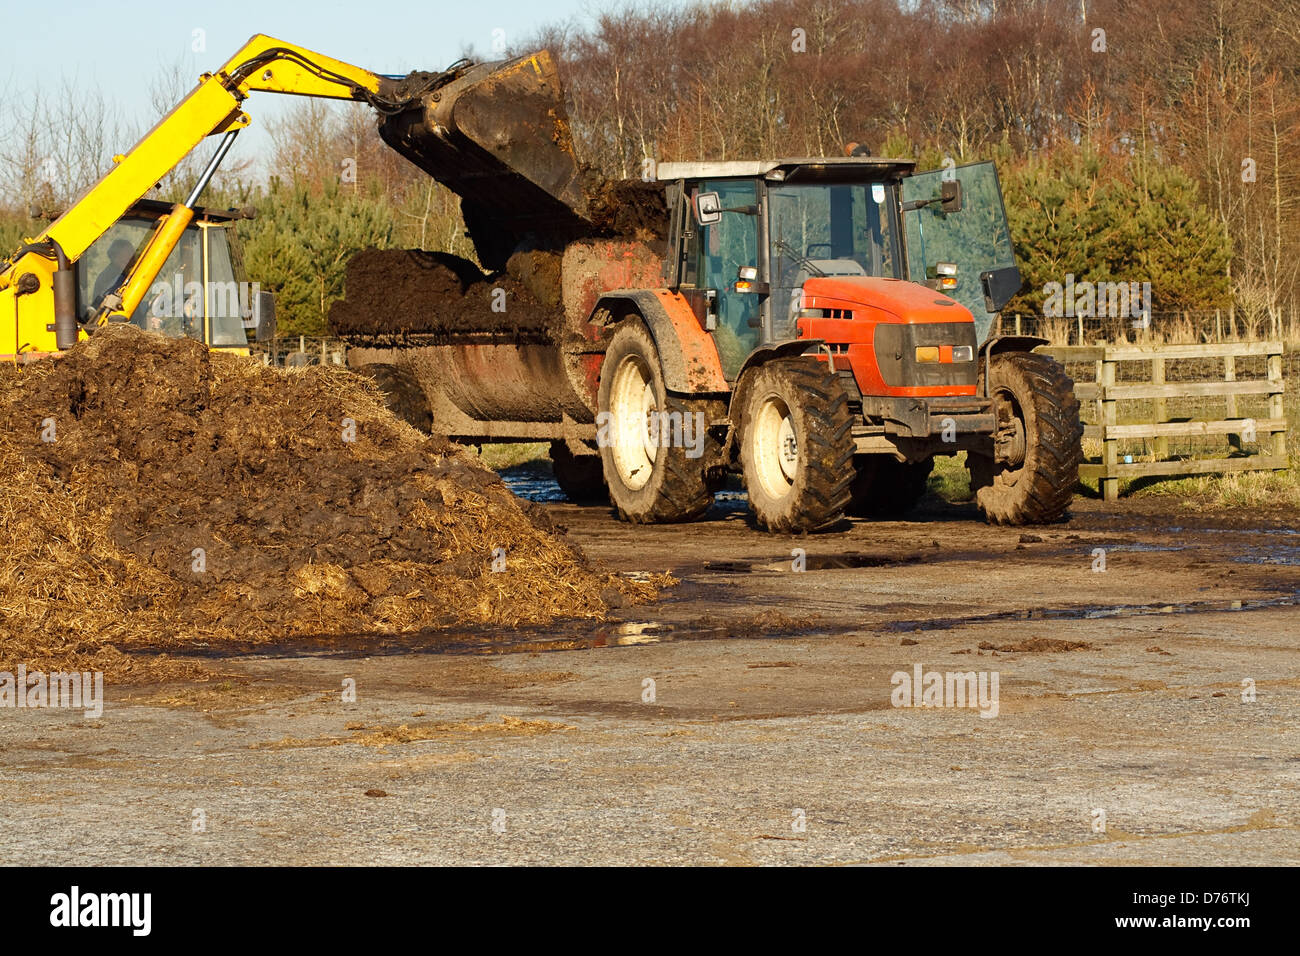 agricultural scene of farmer loading his commercial muck spreader with manure before fertilising his field - Stock Image